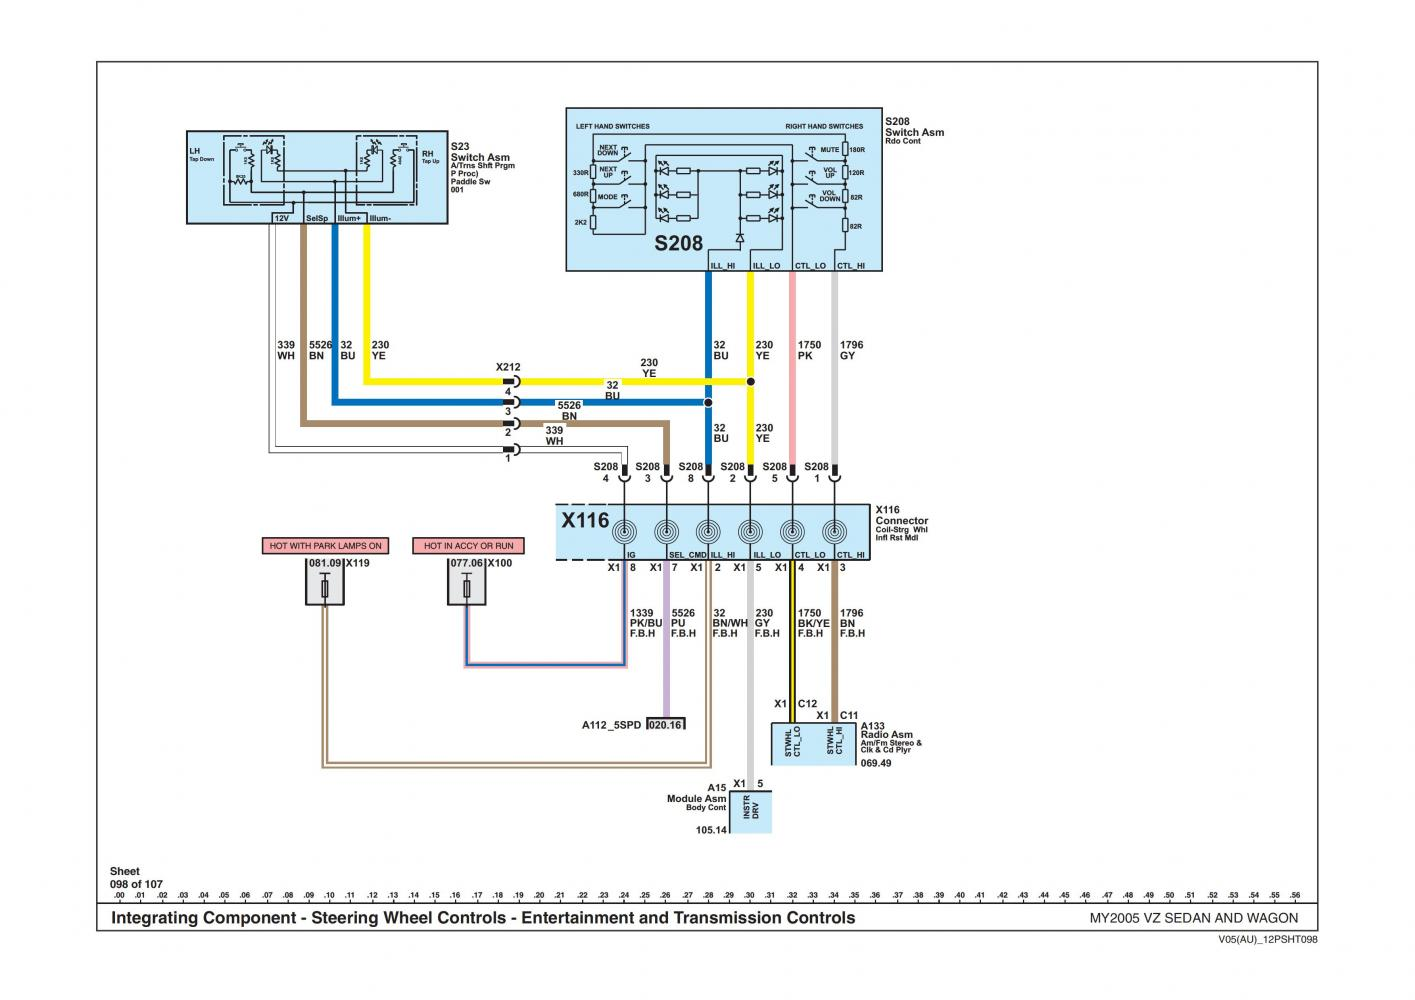 wanted wire diagram for head unit & steering wheel controls vx stereo wiring diagram at aneh.co